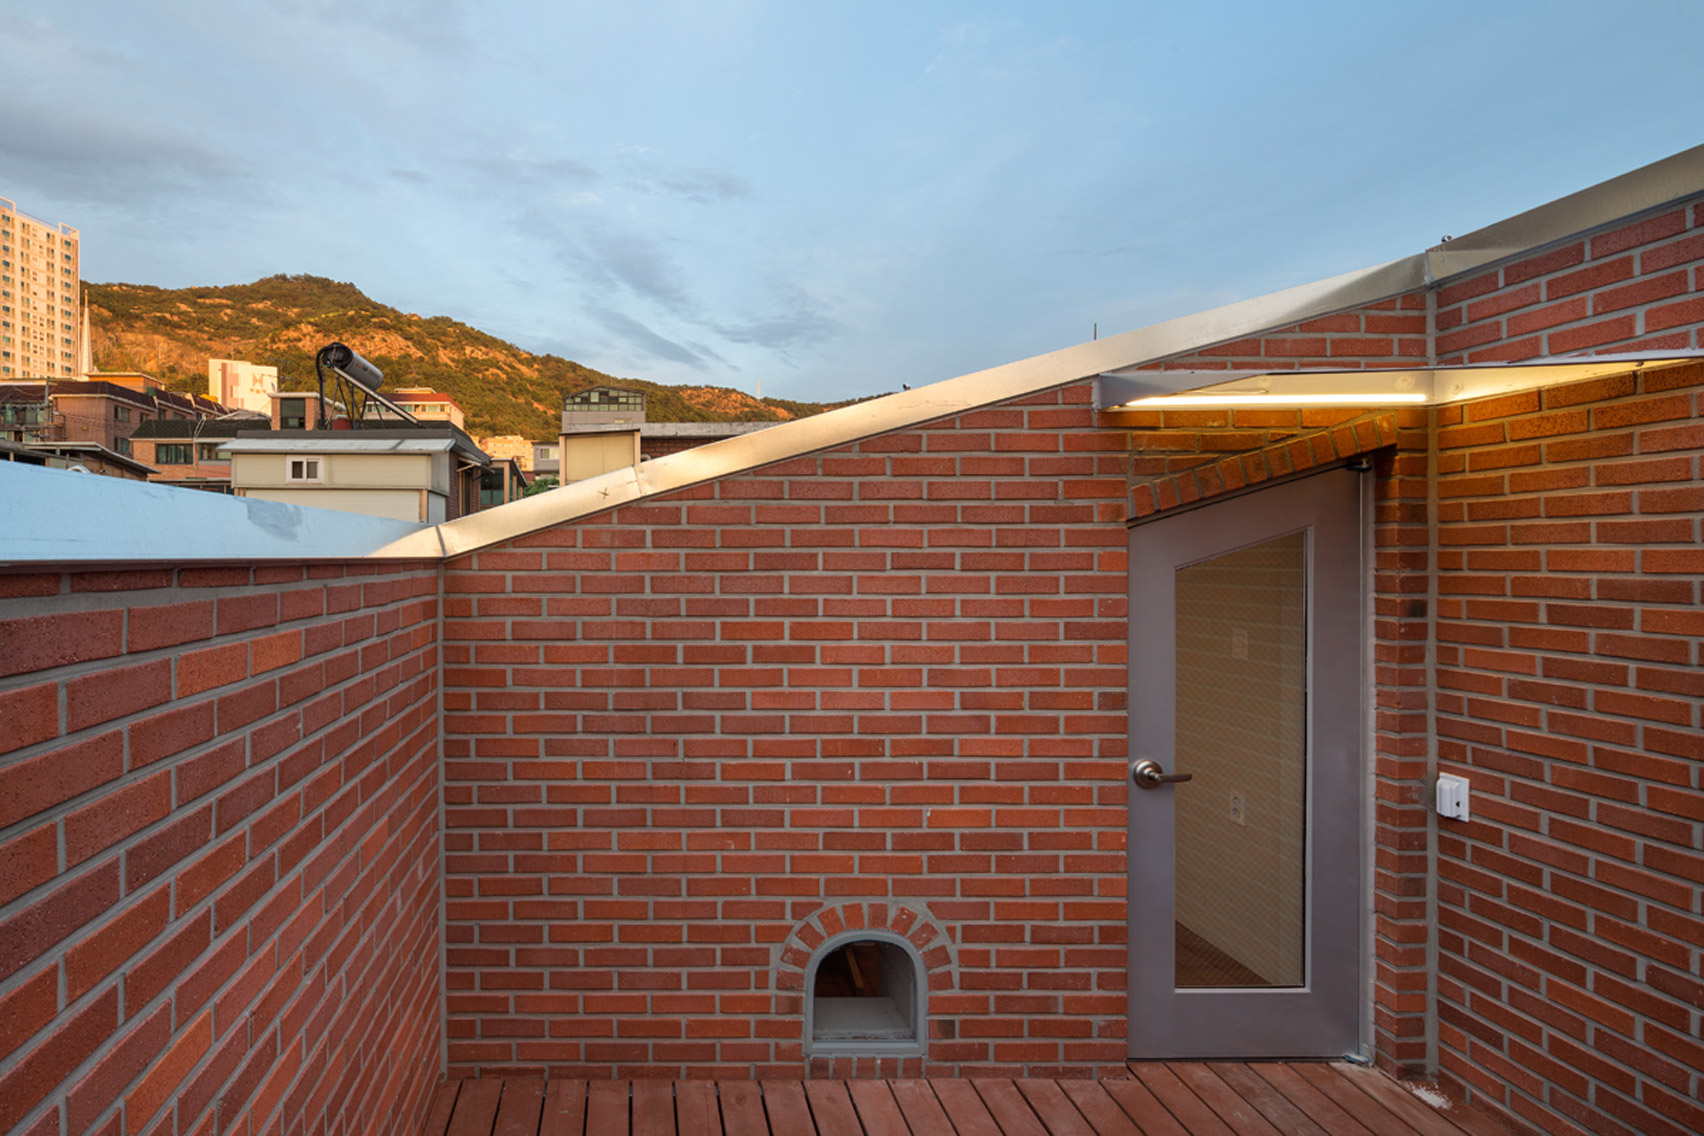 grown-house-fhhh-friends-architecture-residential-seoul-south-korea_dezeen_1704_col_29